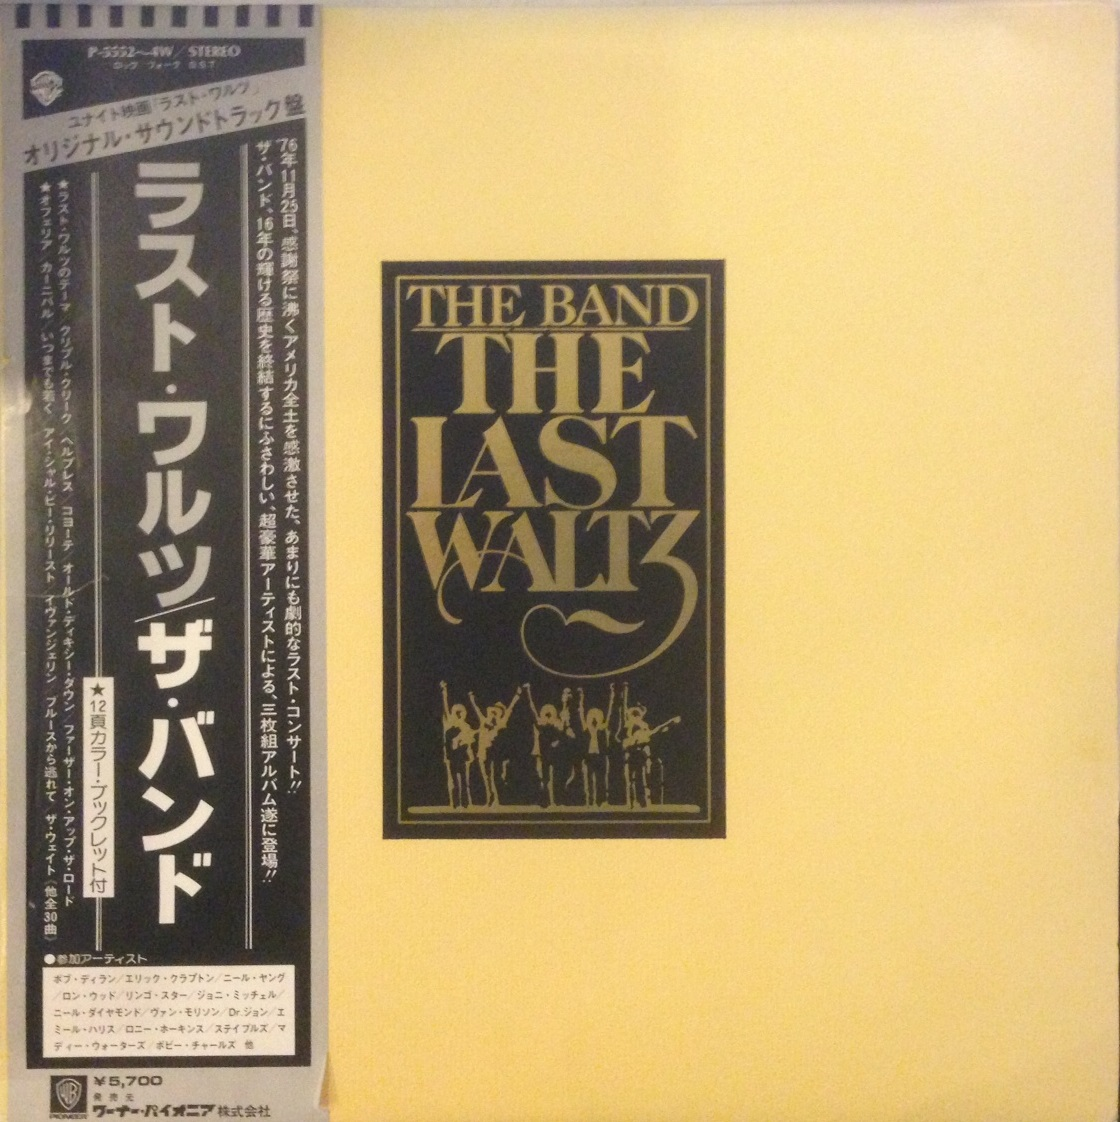 BAND / LAST WALTZ